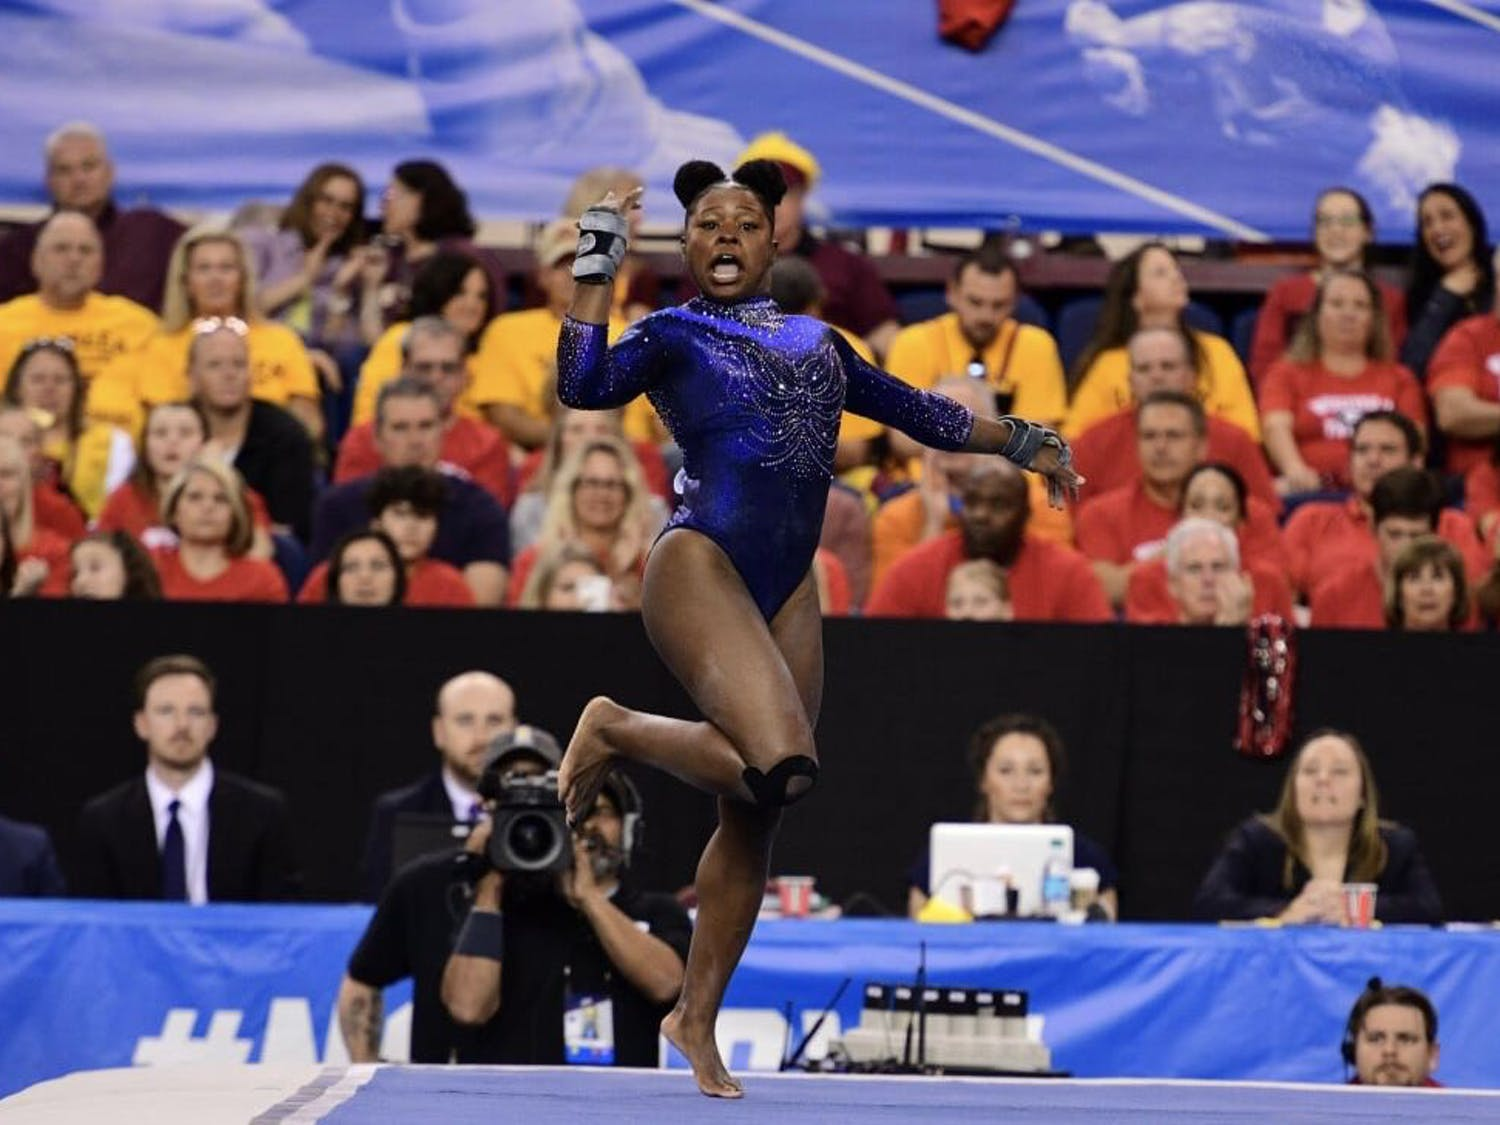 UF senior Alicia Boren earned a share of the NCAA Gymnastics Championships' floor exercise title Friday with a score of 9.95.